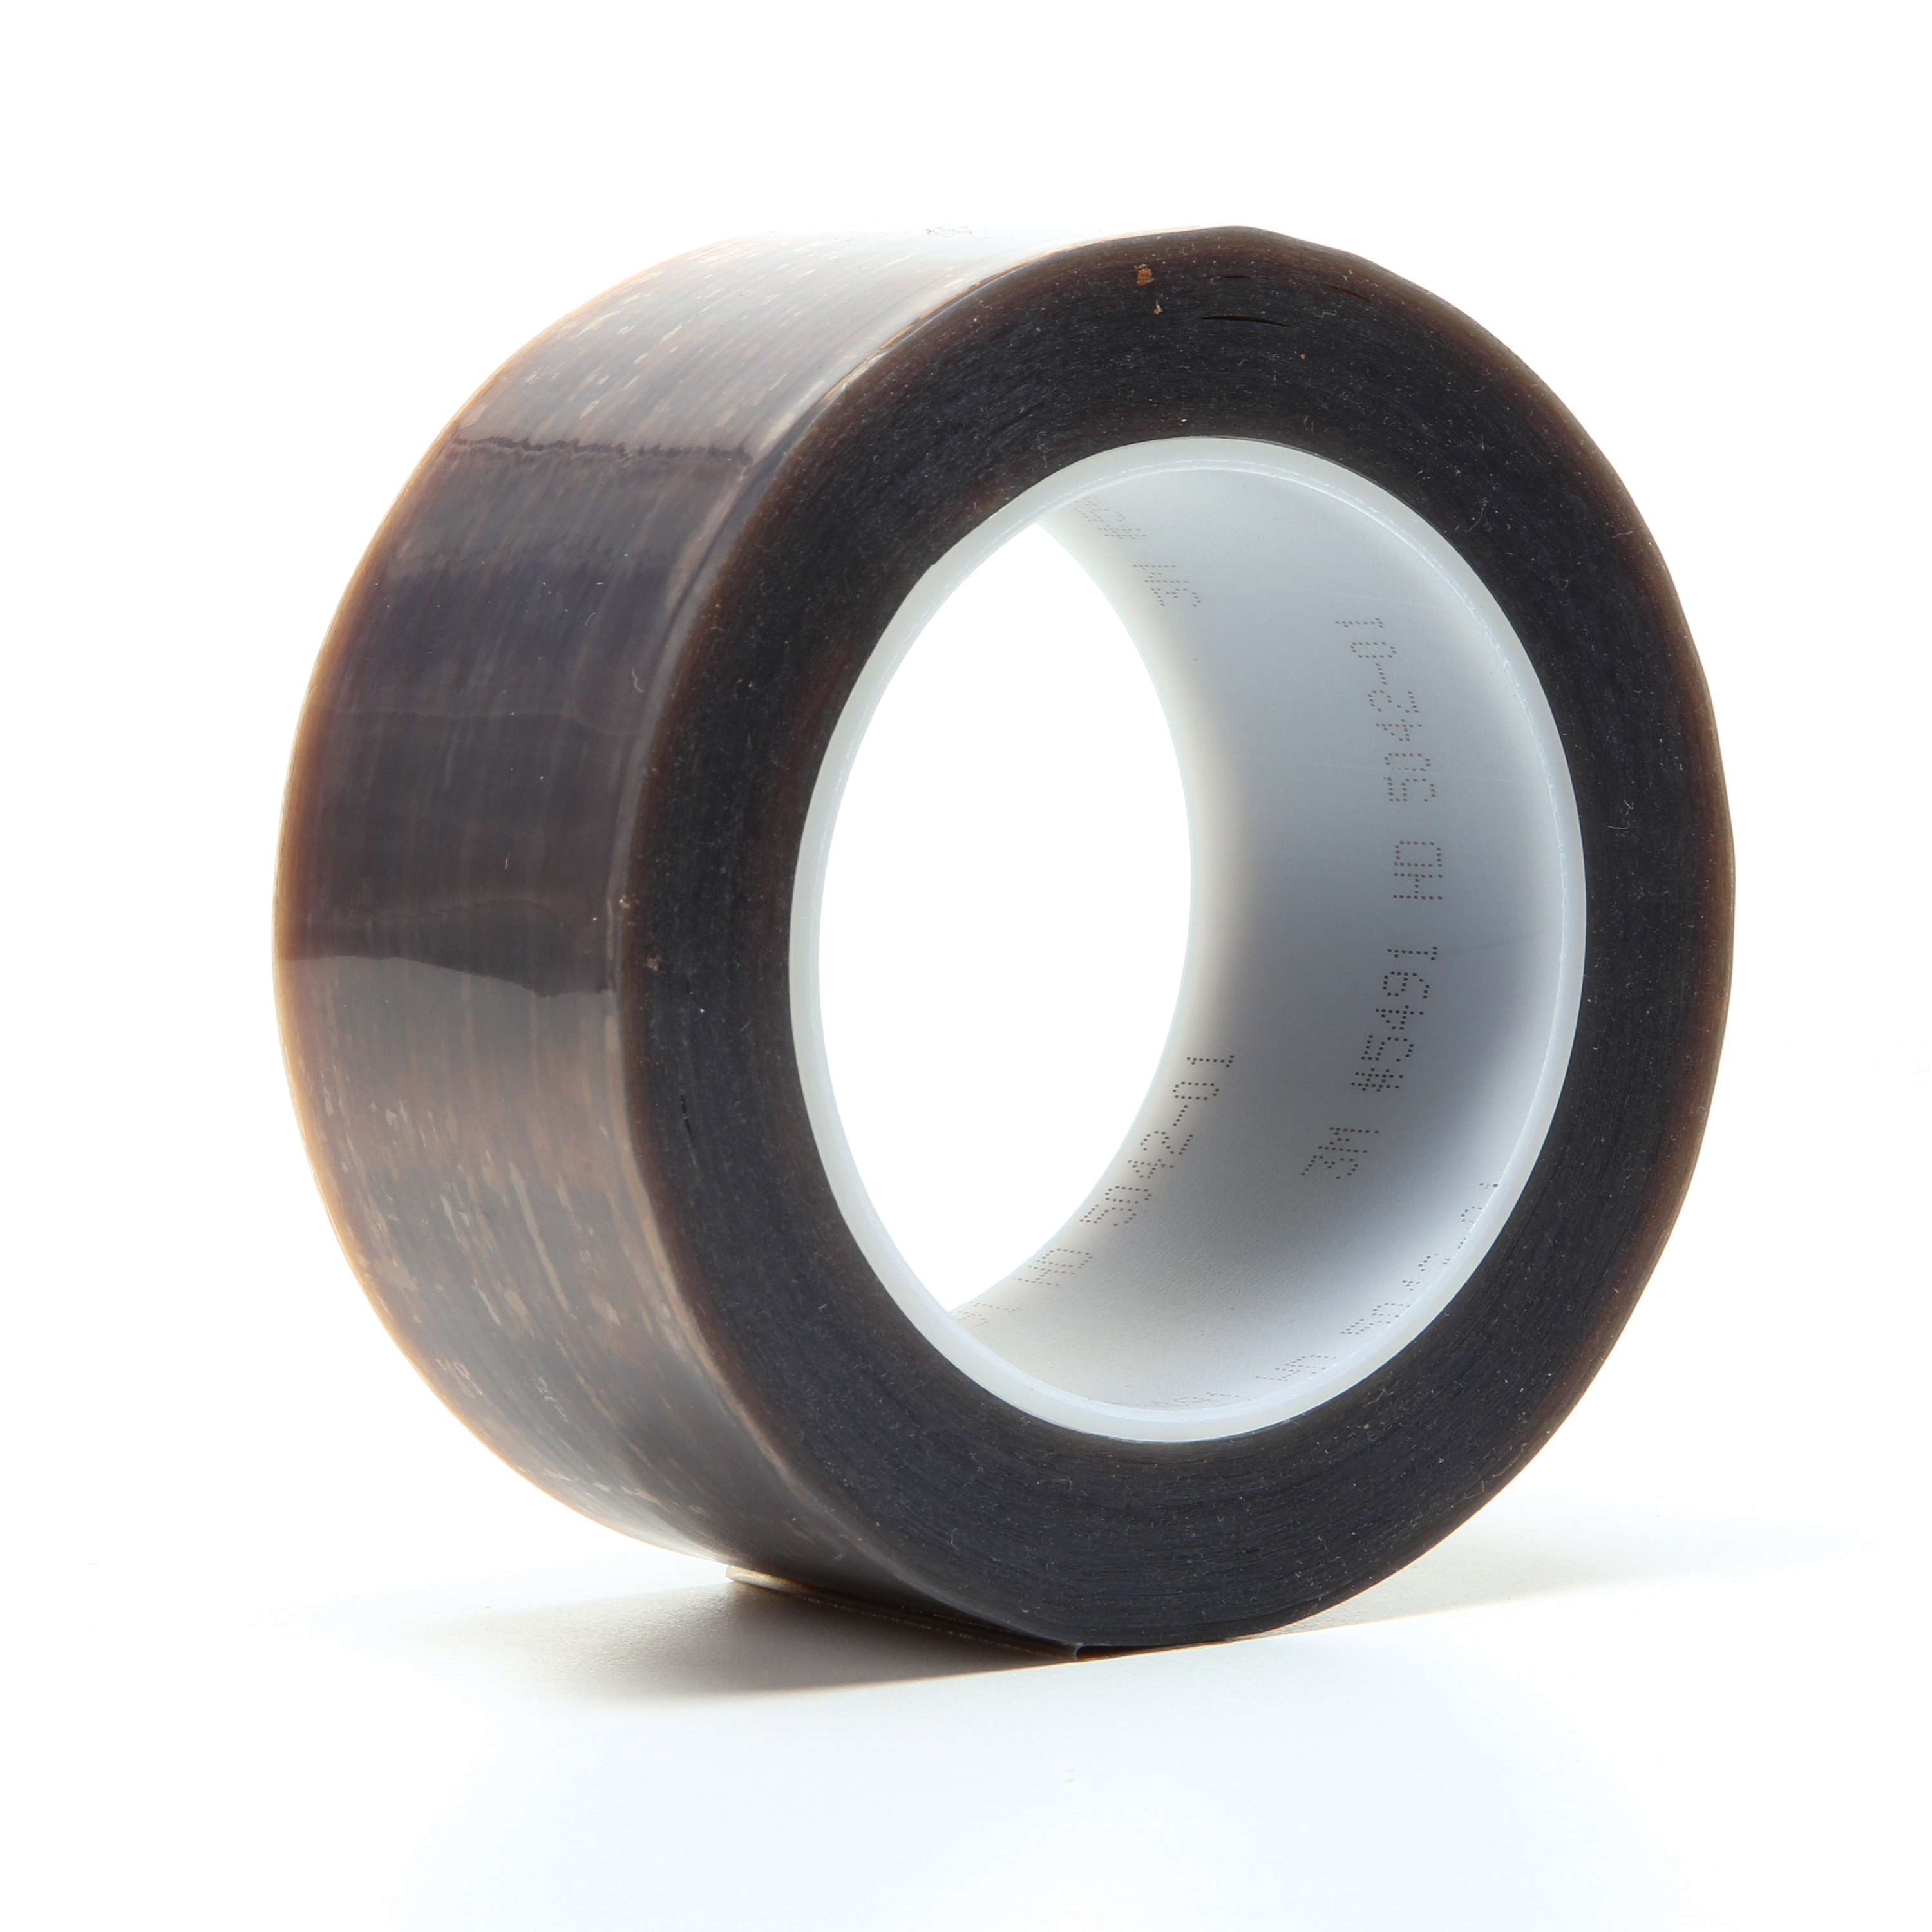 3M™ 021200-16148 Film Tape, 36 yd L x 2 in W, 6.7 mil THK, Silicon Adhesive, Extruded PTFE Backing, Gray